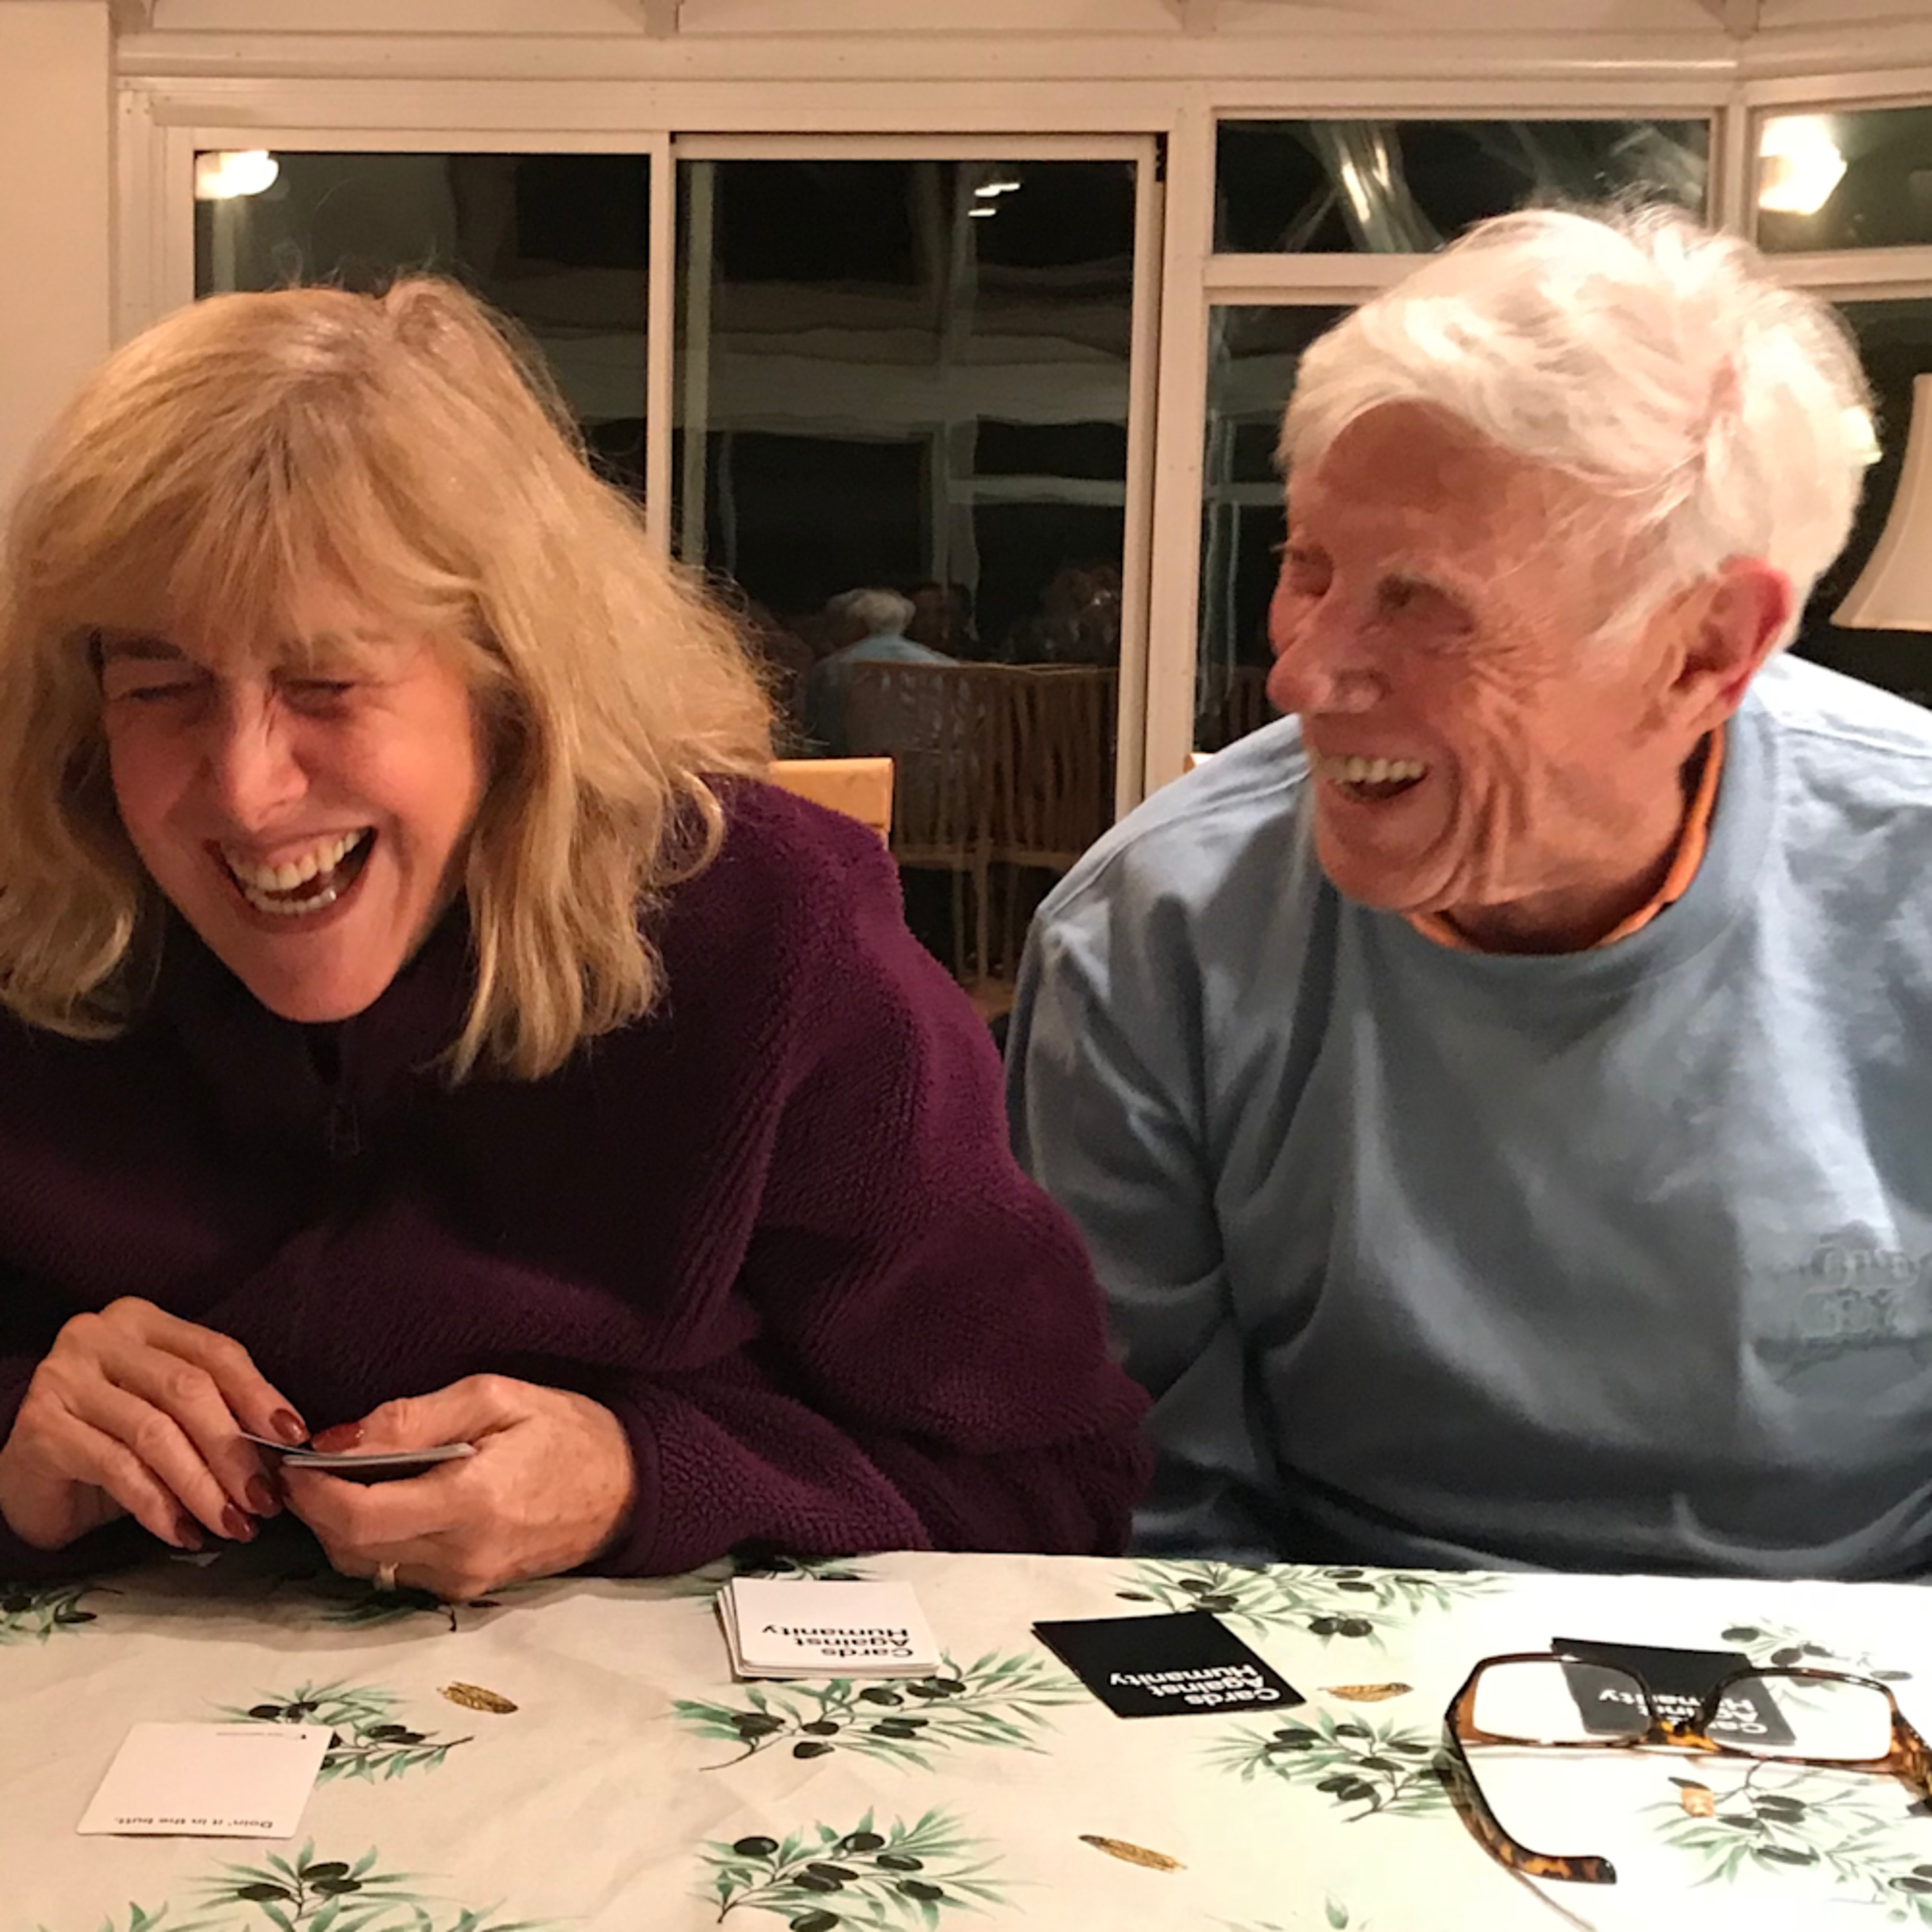 Marci brockmann laughing at cards lzj2fk